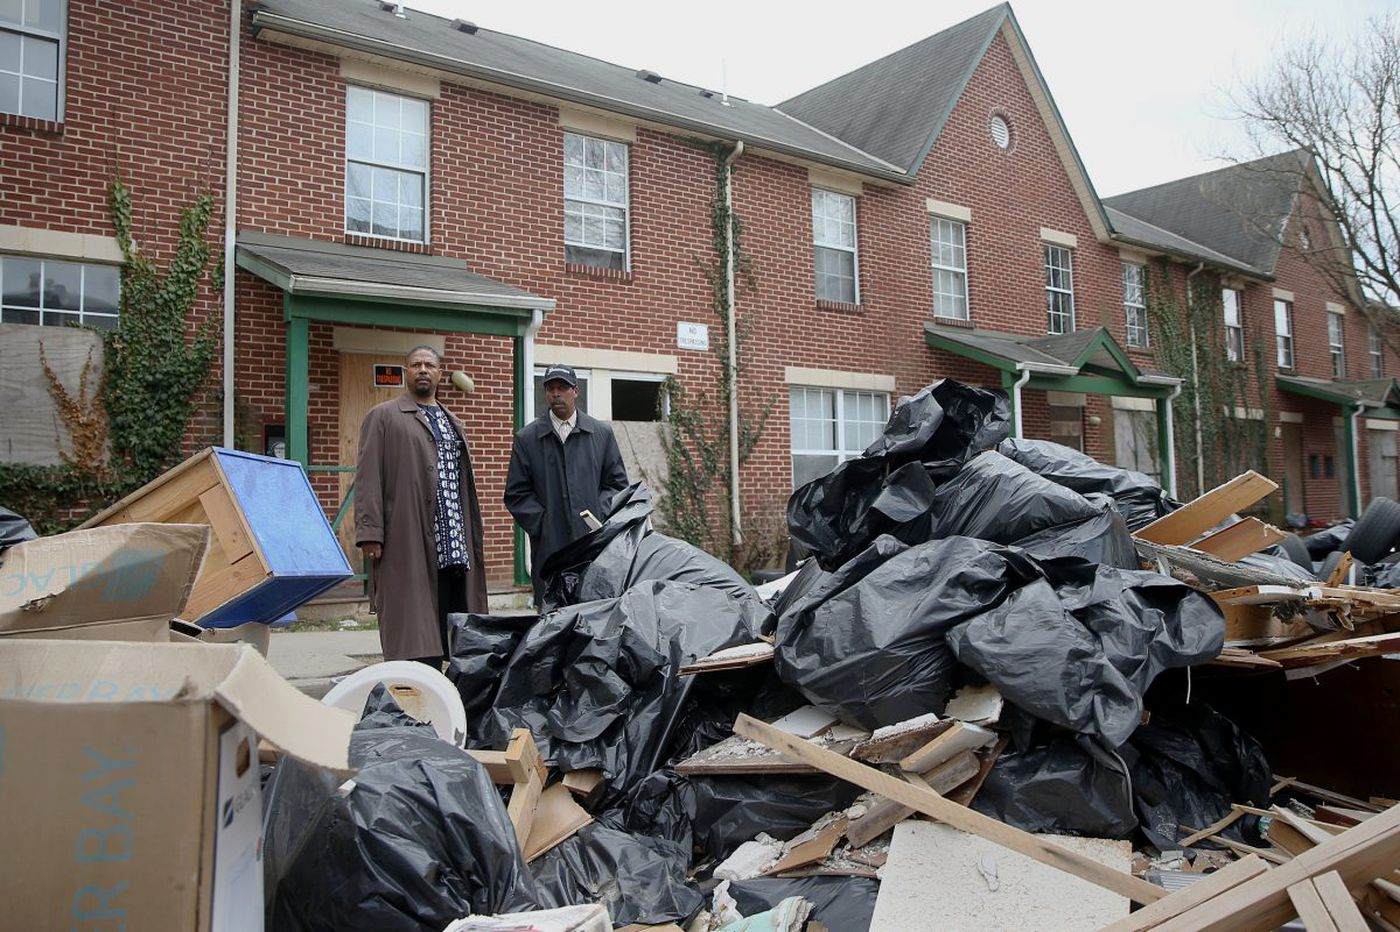 Germantown residents are fighting to bring down the neighborhood's notorious blight king